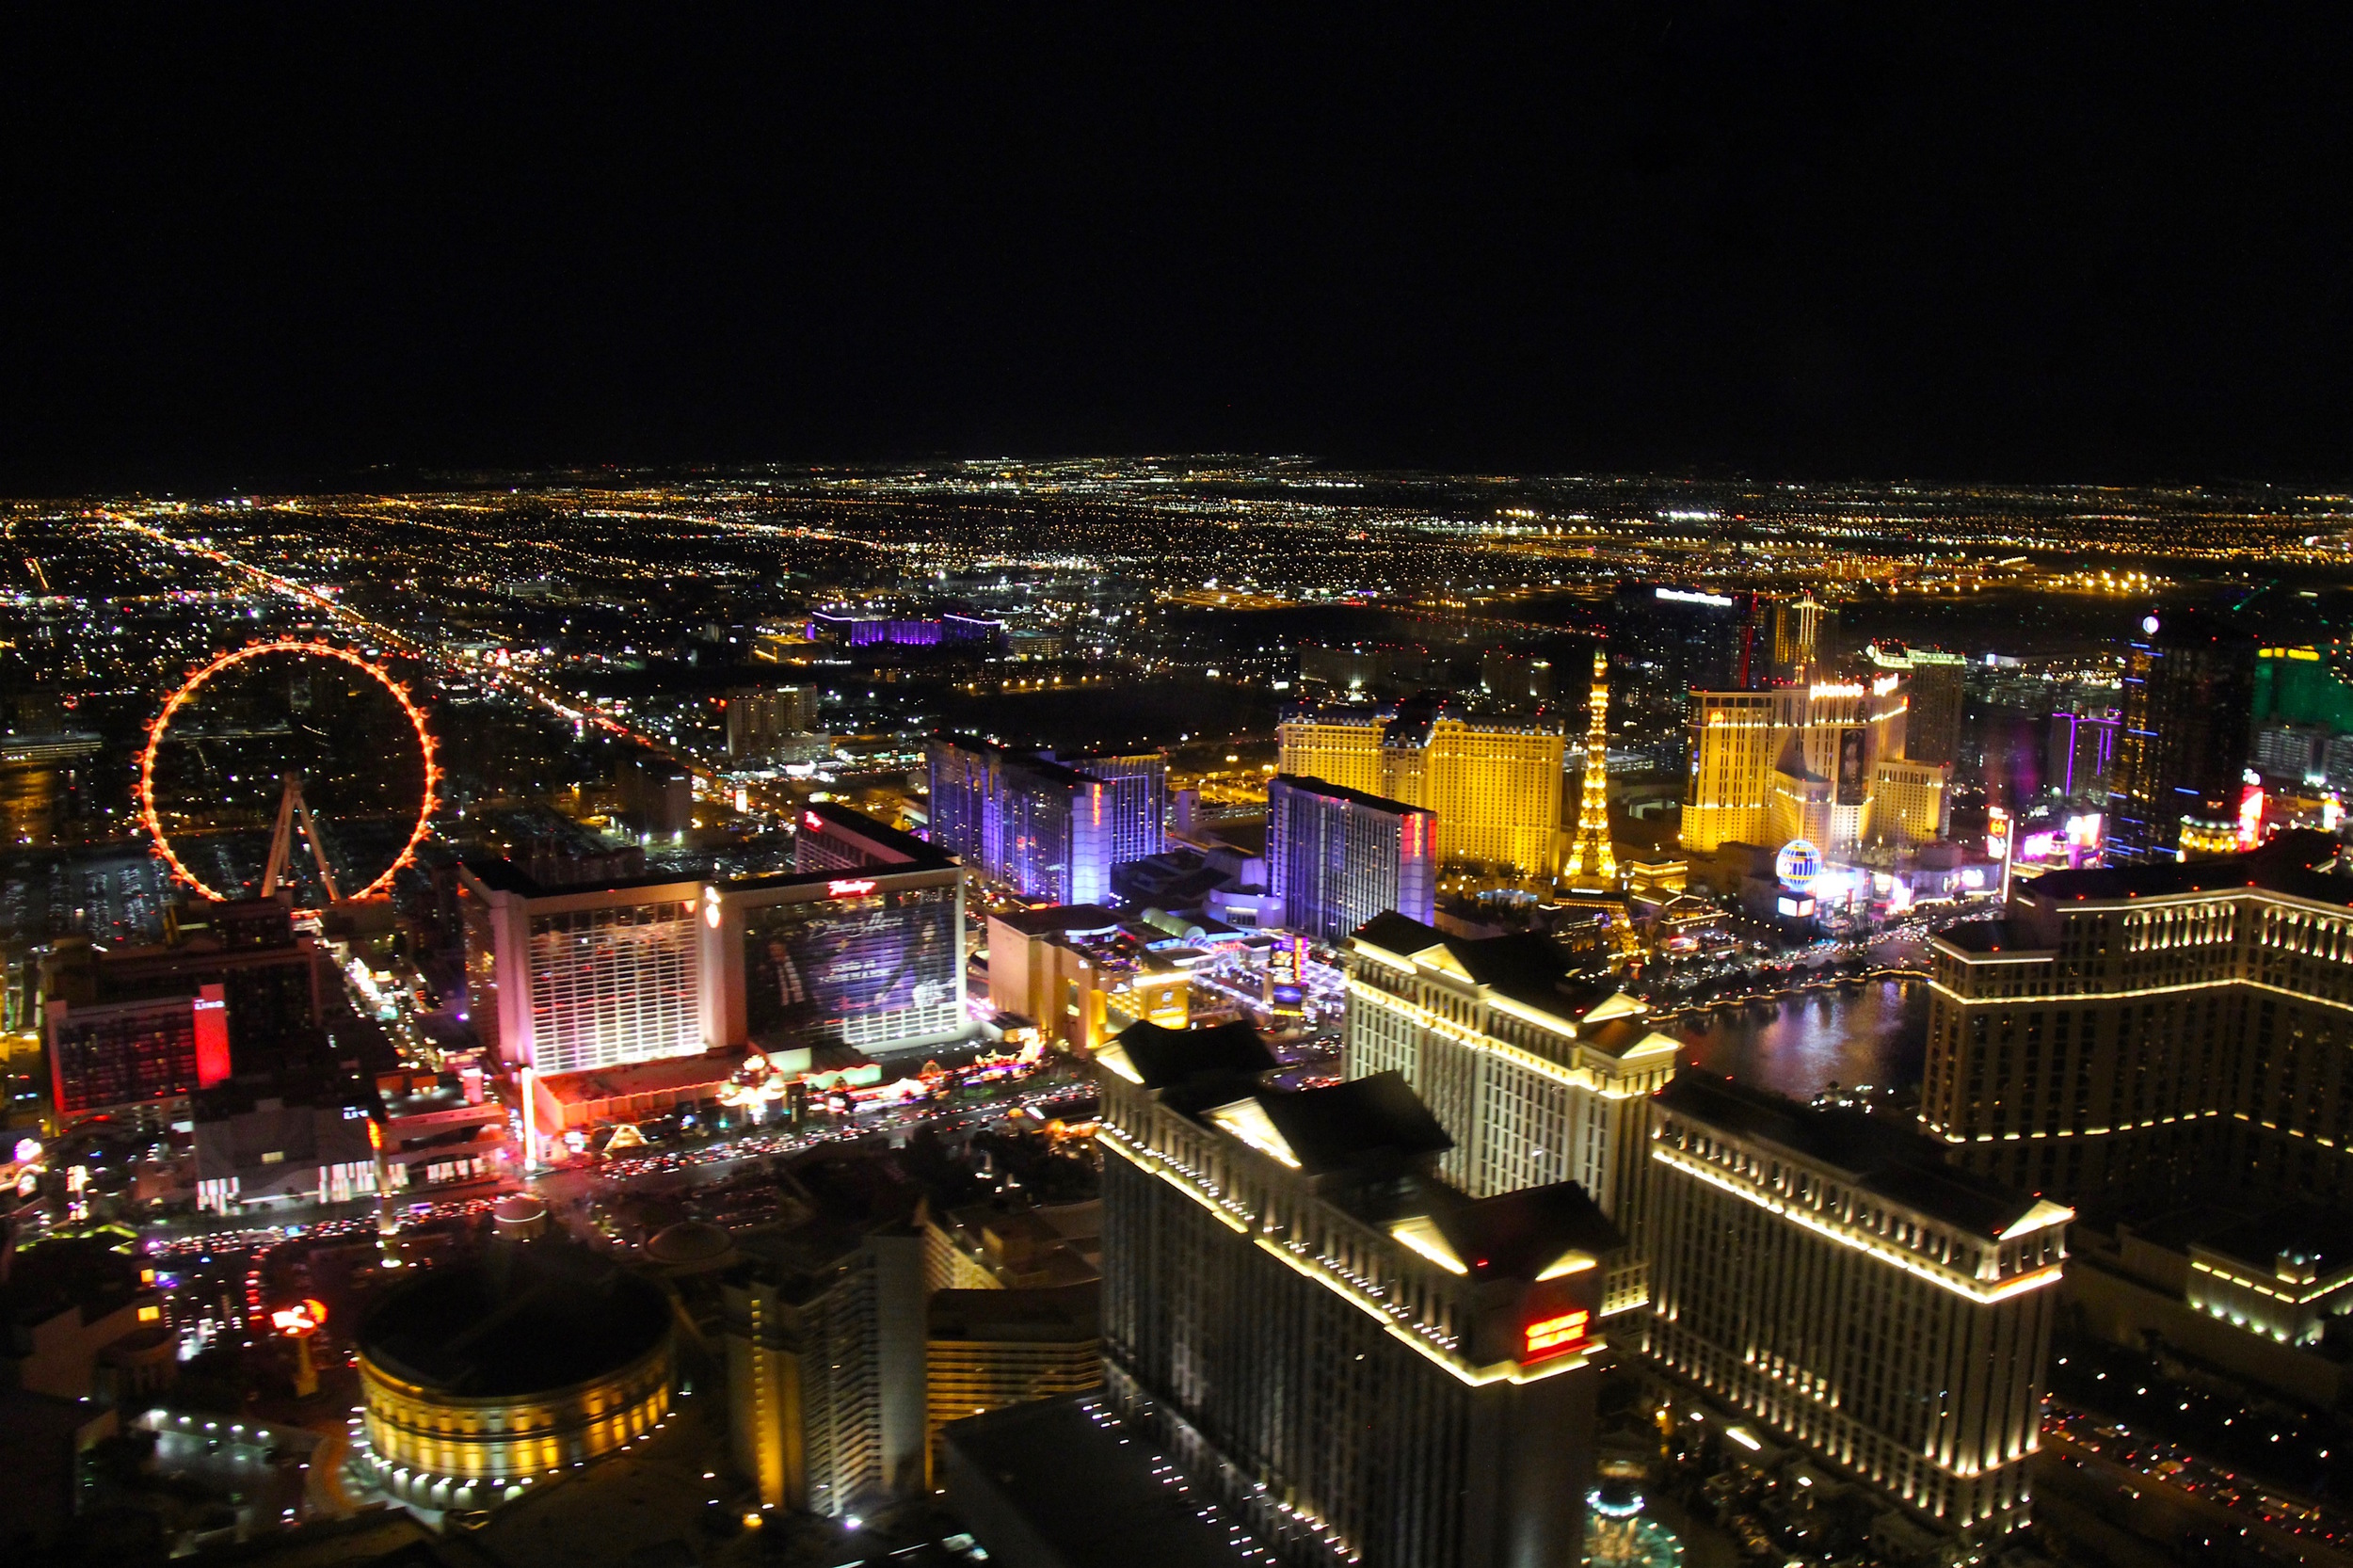 Vegas' sparkly setting captured from our helicopter's window!